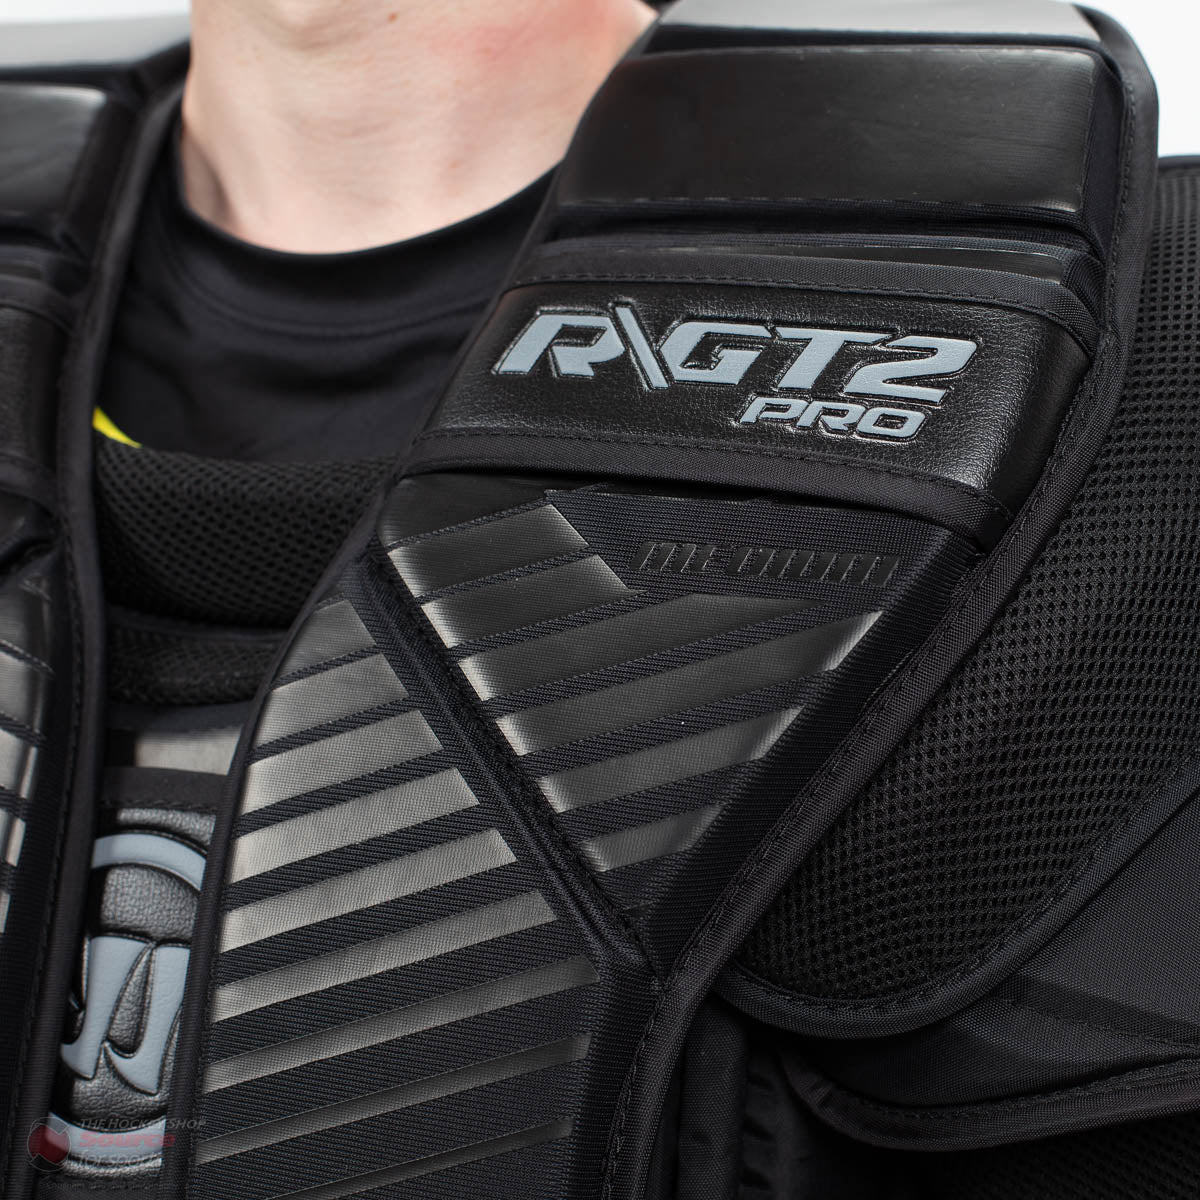 Warrior GT2 Pro Chest Protector Review